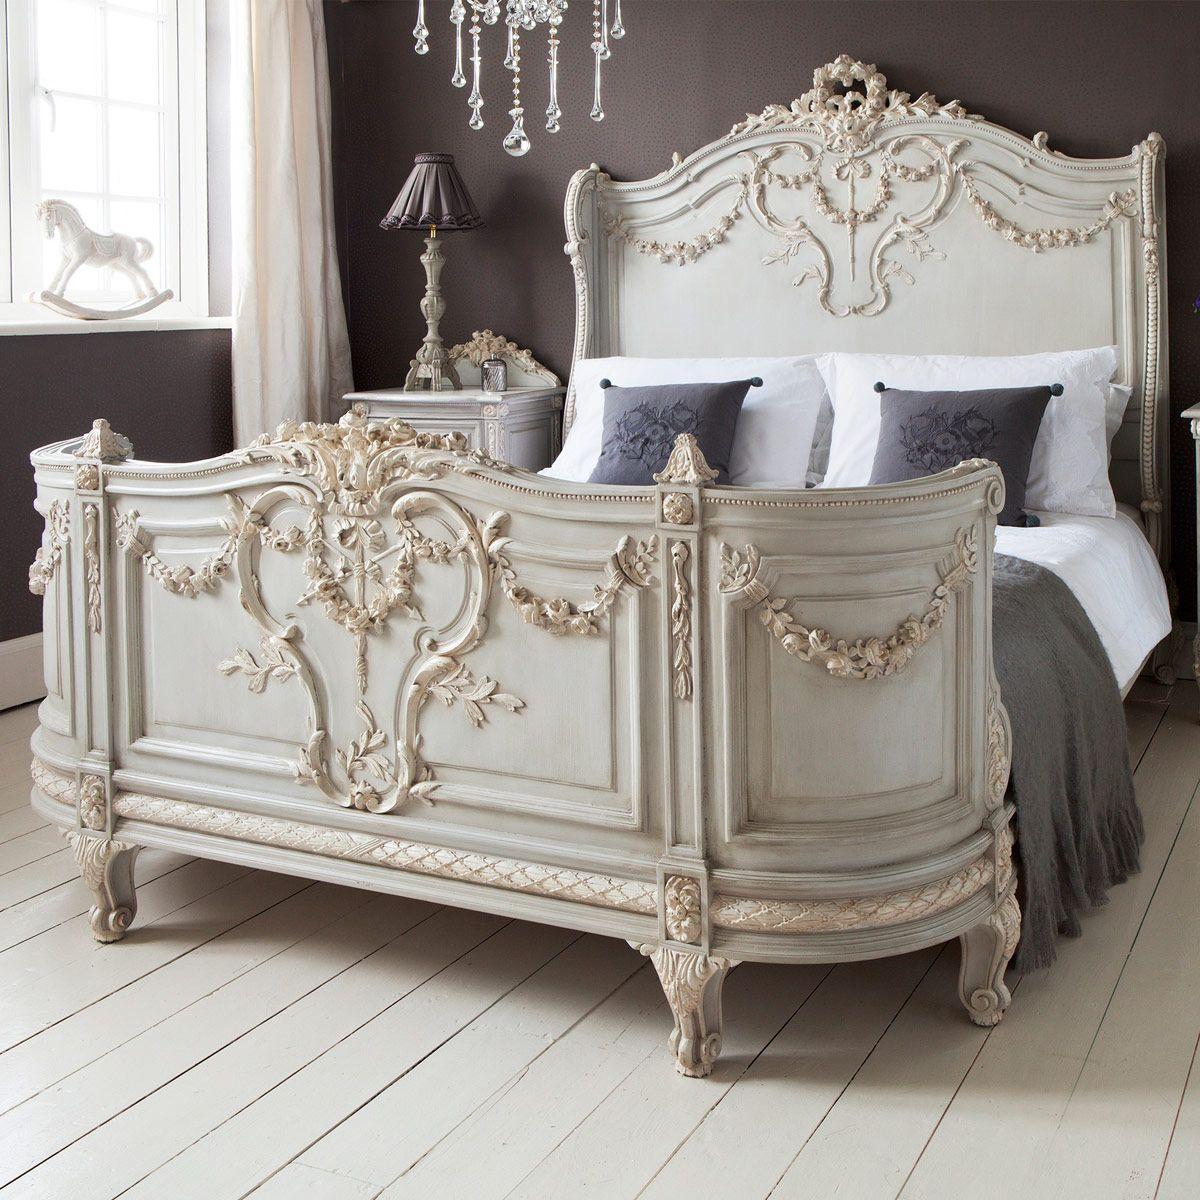 new bonaparte french bed french beds beds mattresses french